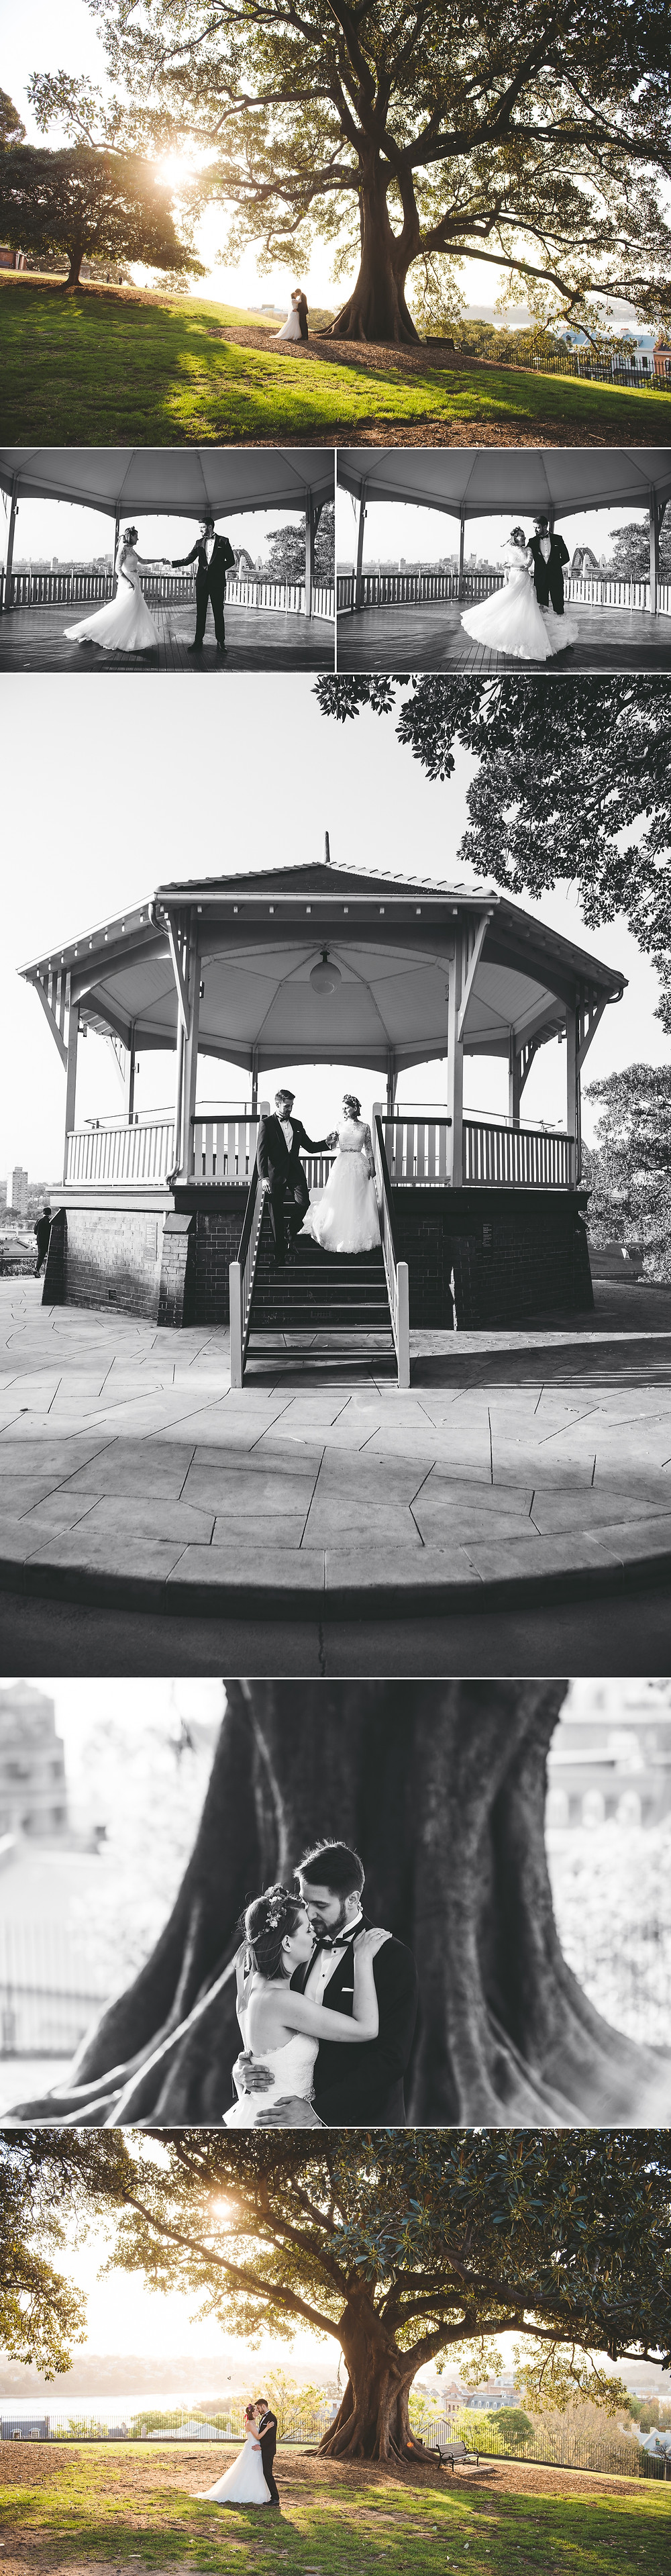 Wedding Photography, Sydney, Sydney Harbour